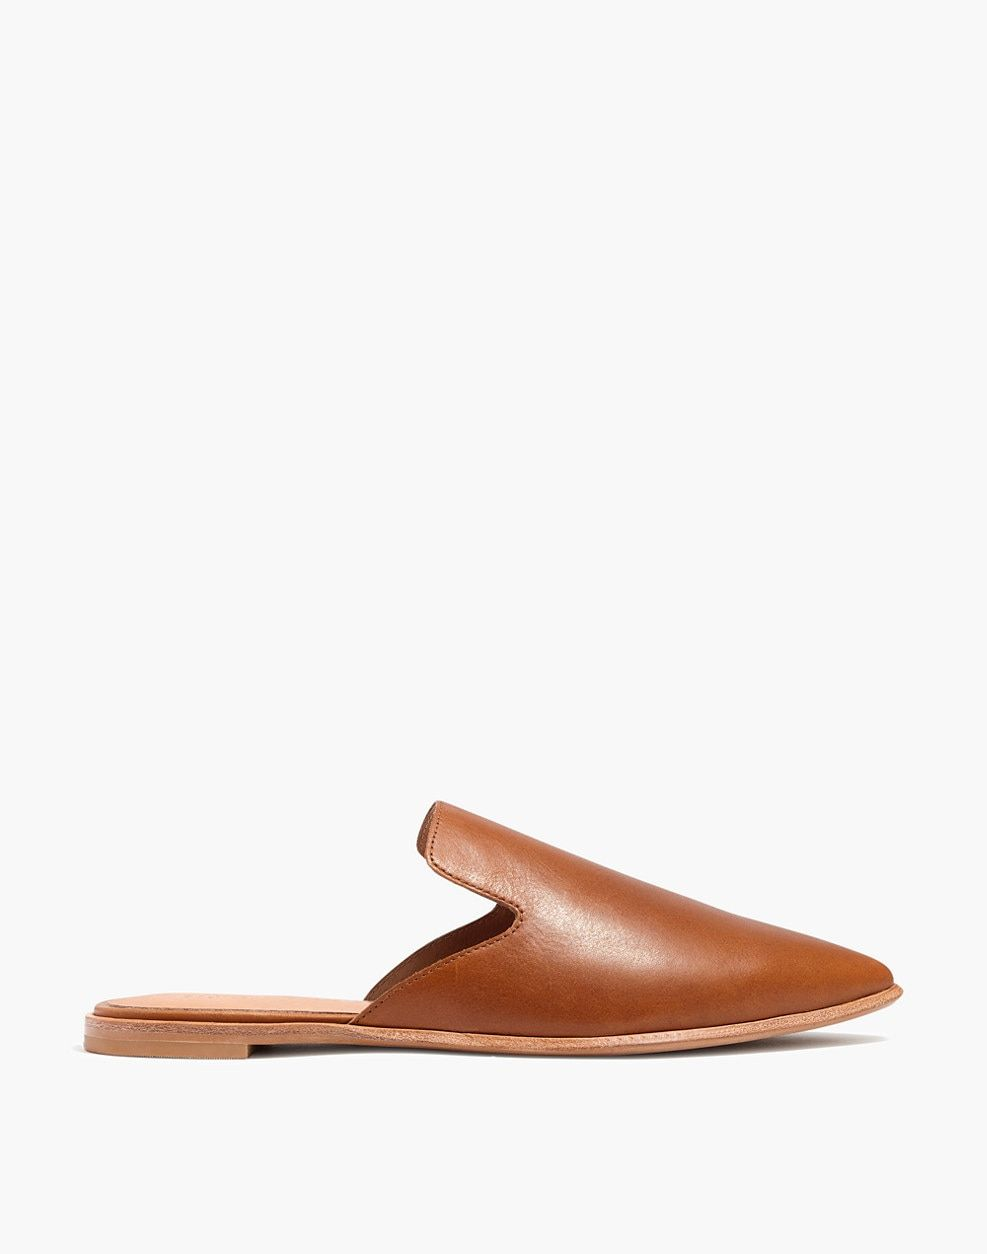 0cd1a6fe3c18 The Gemma Mule in Leather   flats